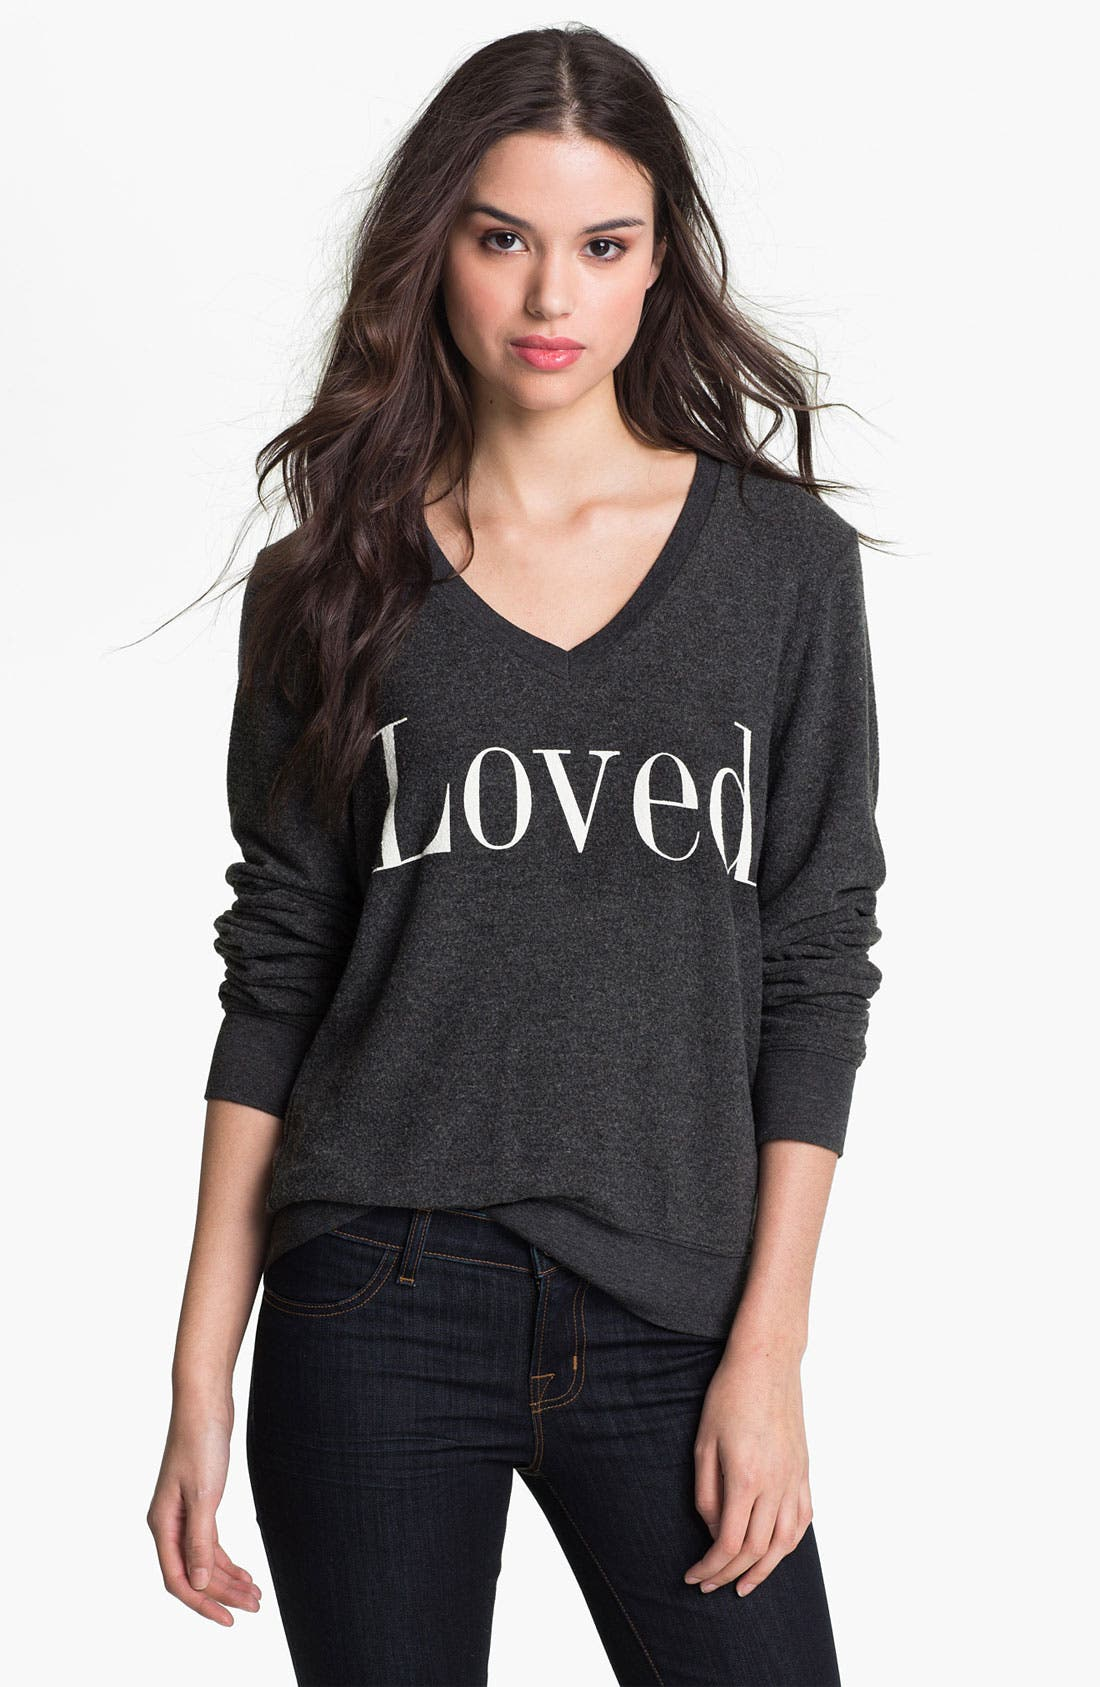 Main Image - Wildfox 'Loved' Graphic Sweatshirt